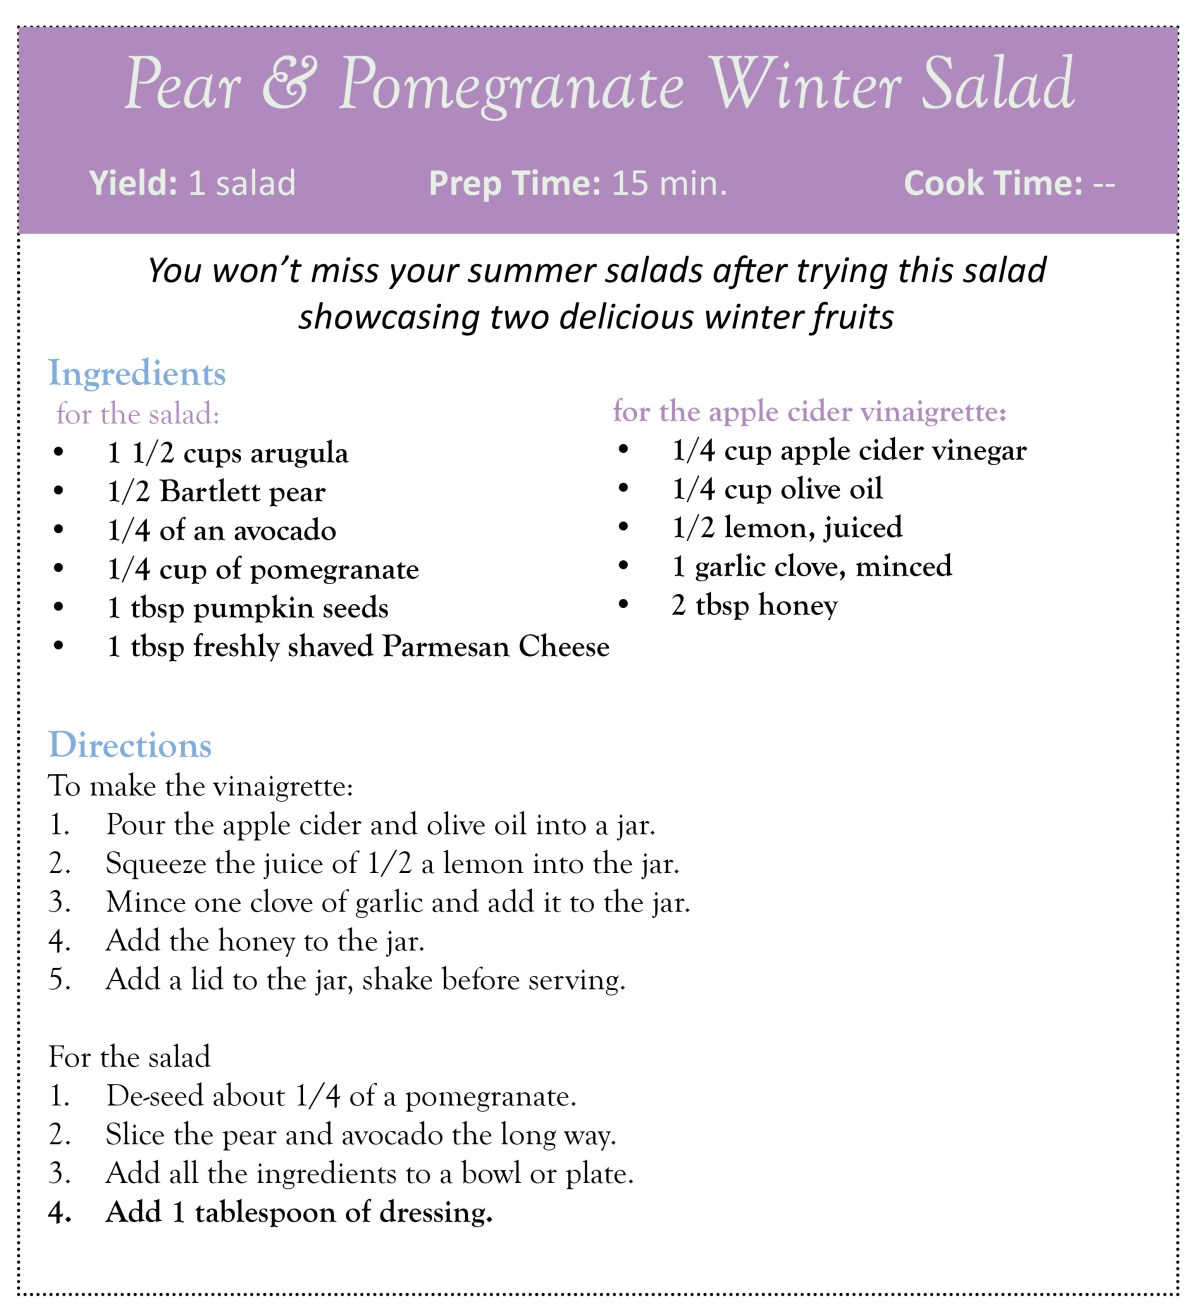 pear and pomegranate winter salad_high